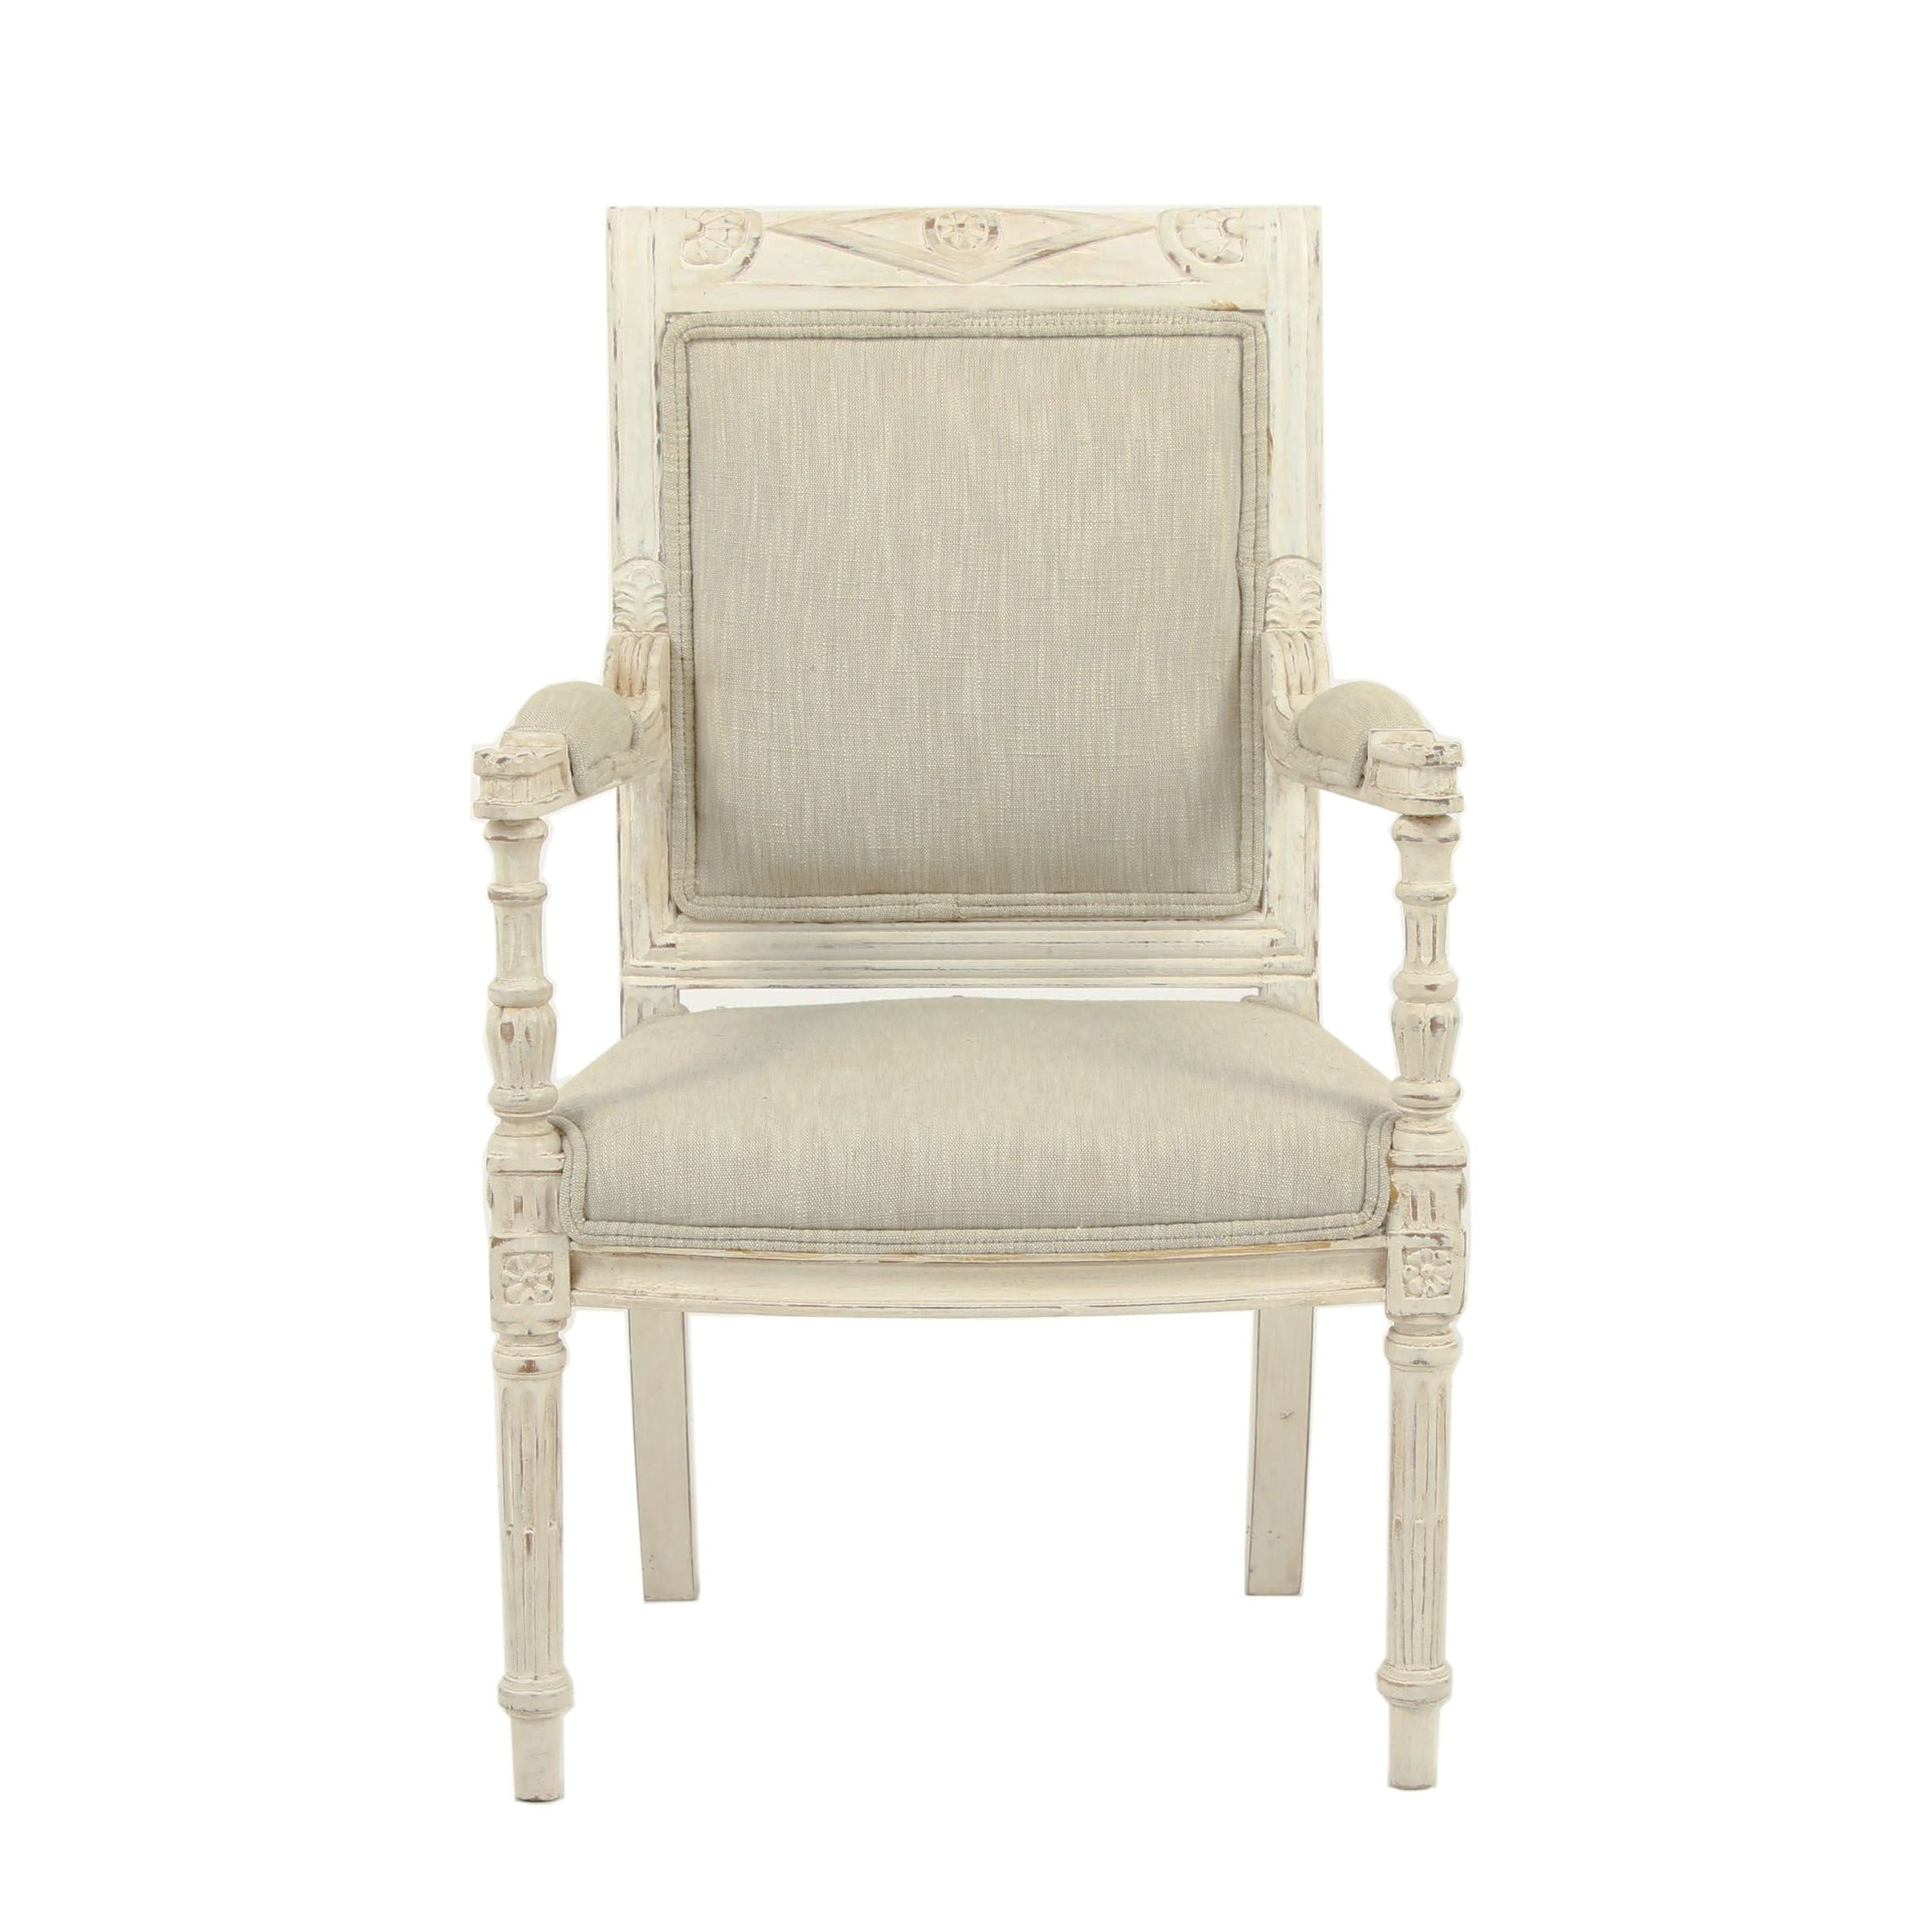 Upholstered Child's Chair